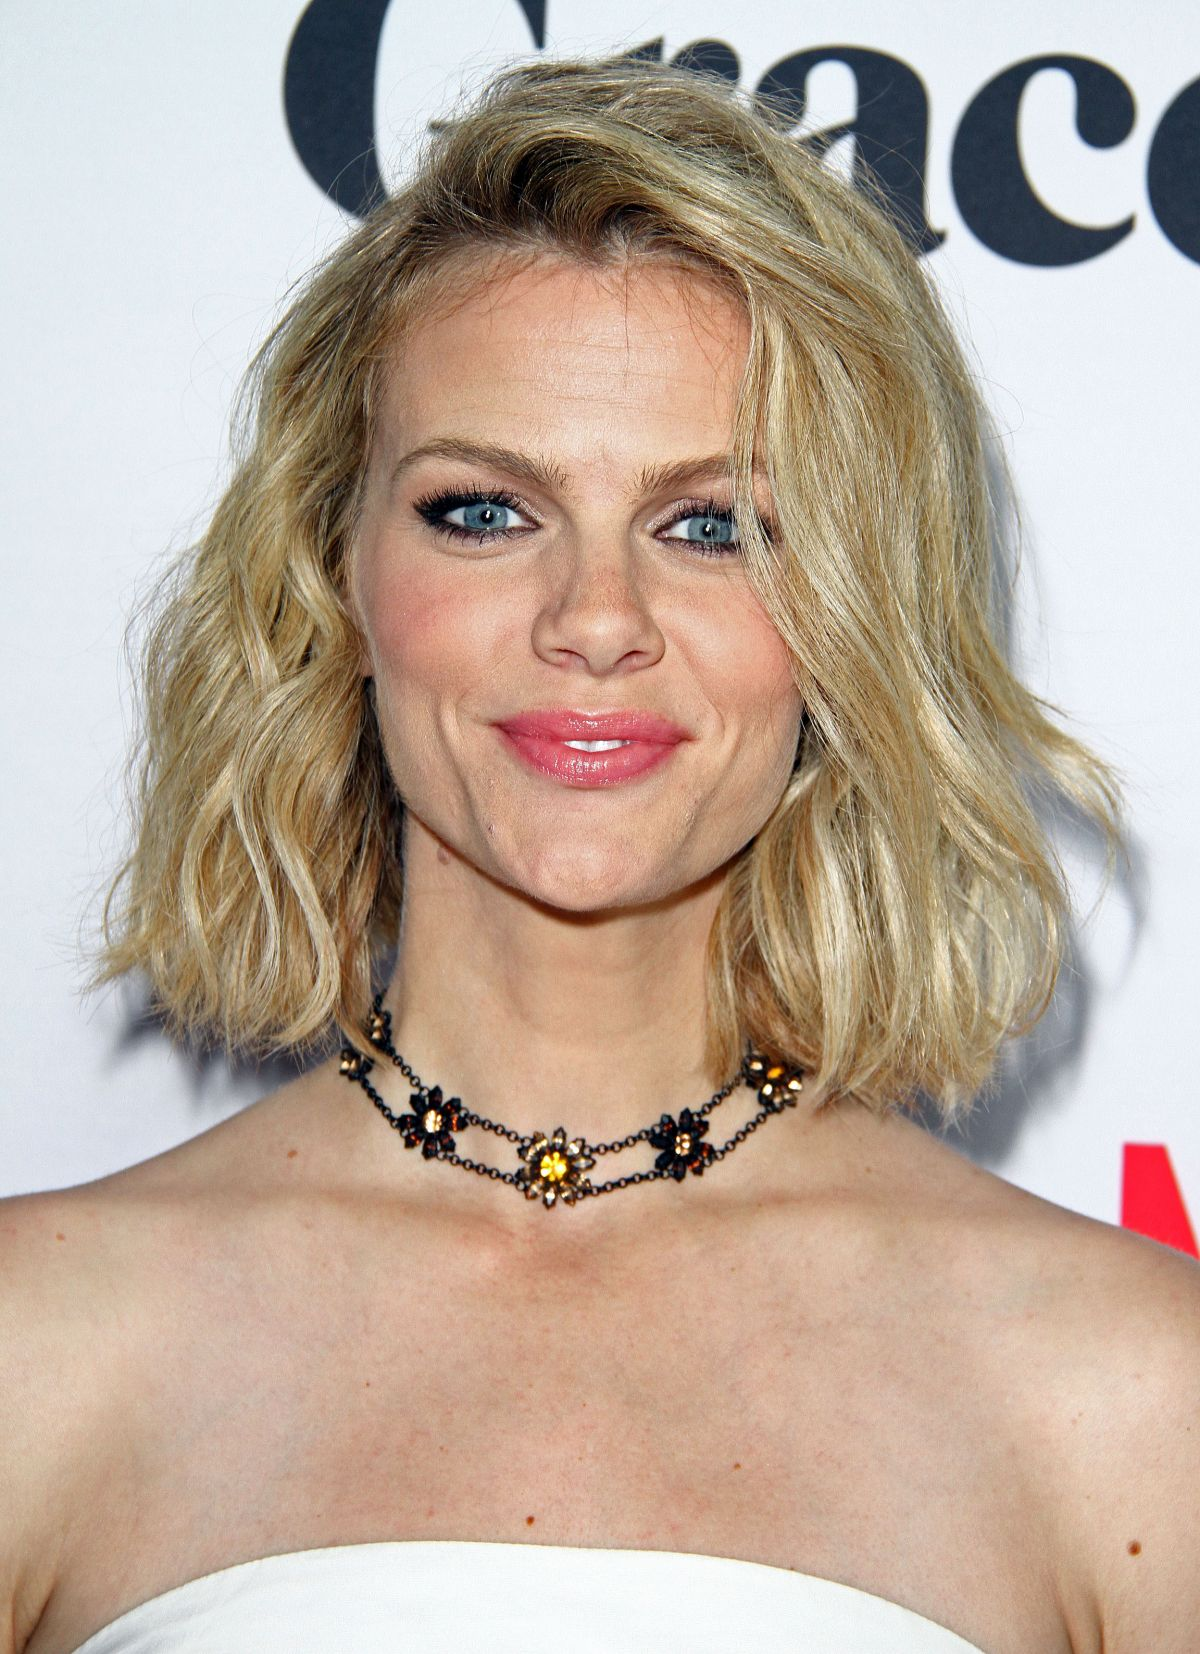 Brooklyn Decker At 'Grace and Frankie' Premiere - Celebzz - Celebzz